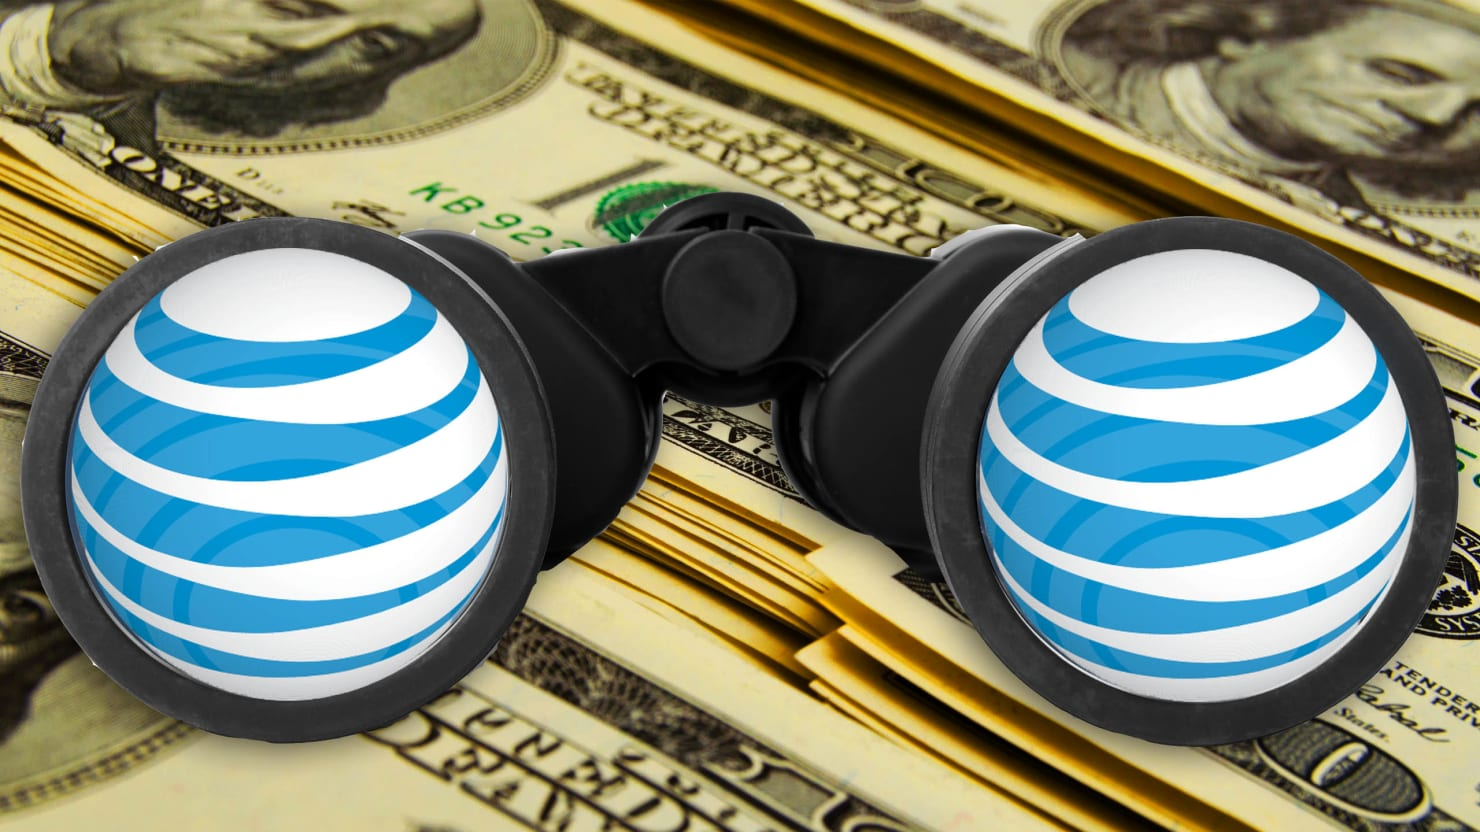 AT&T Is Spying on Americans for Profit